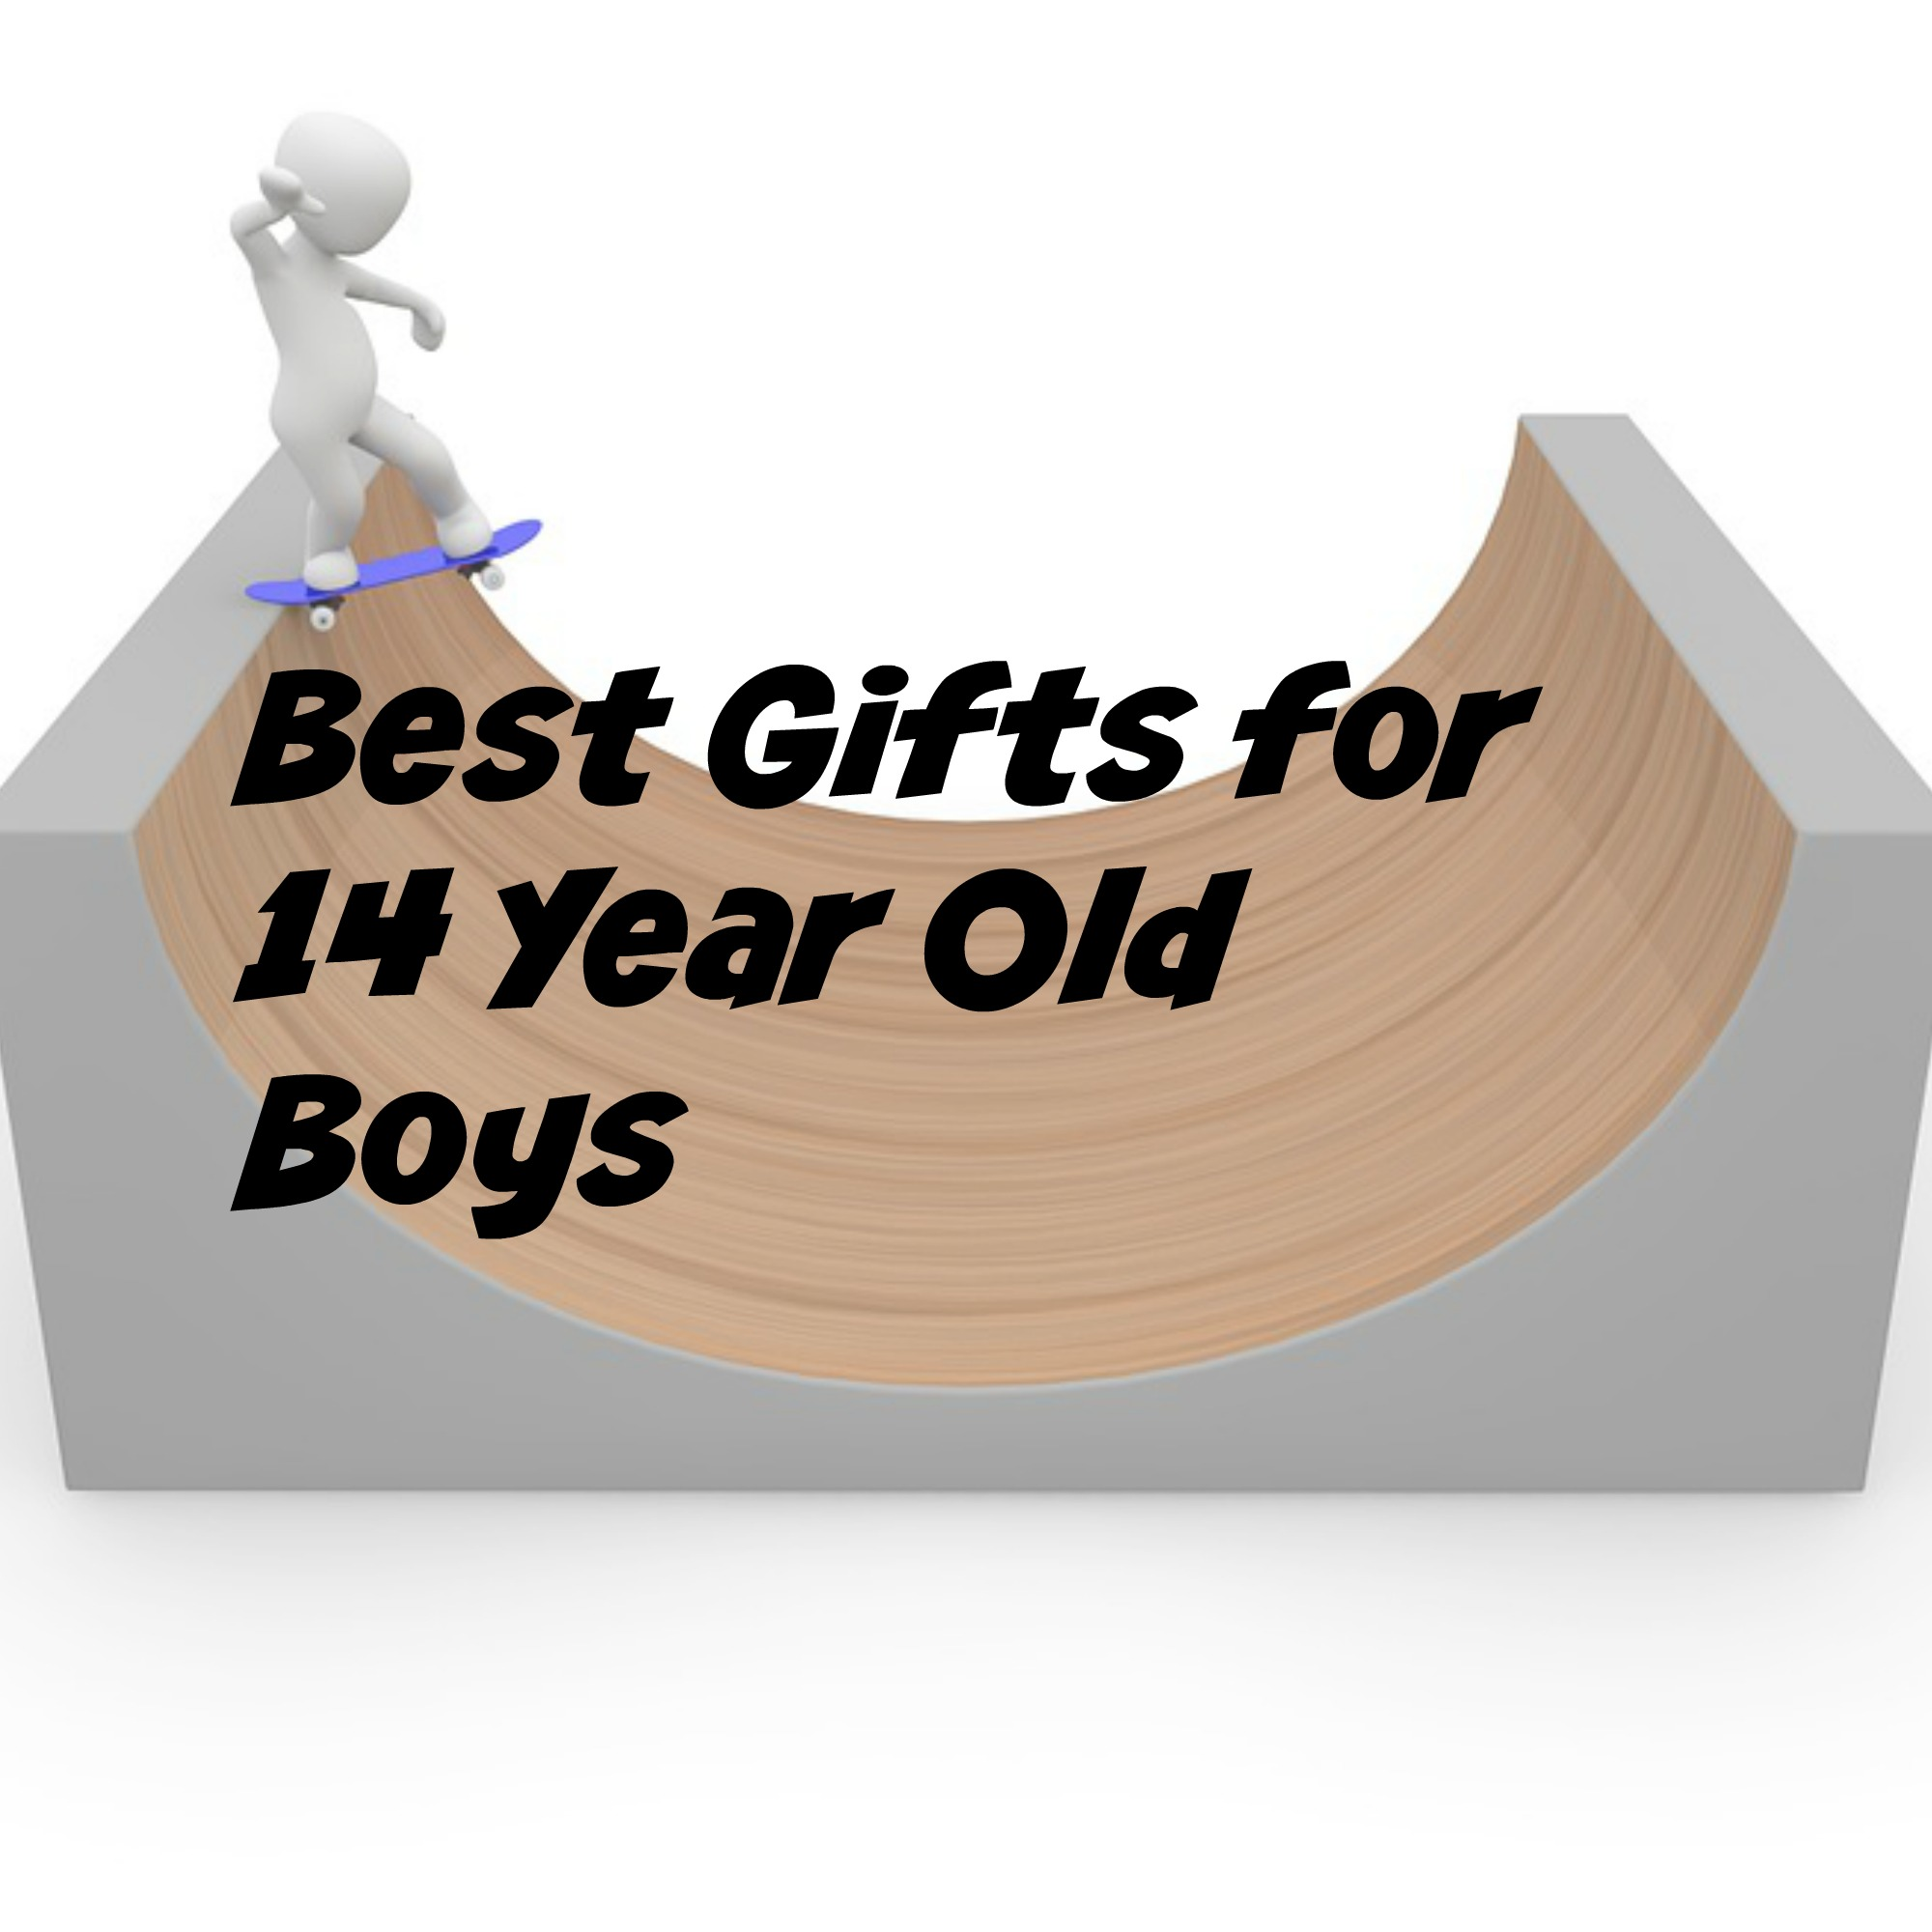 Best Gifts for 14 Year Old Boys\' Birthdays and Christmas